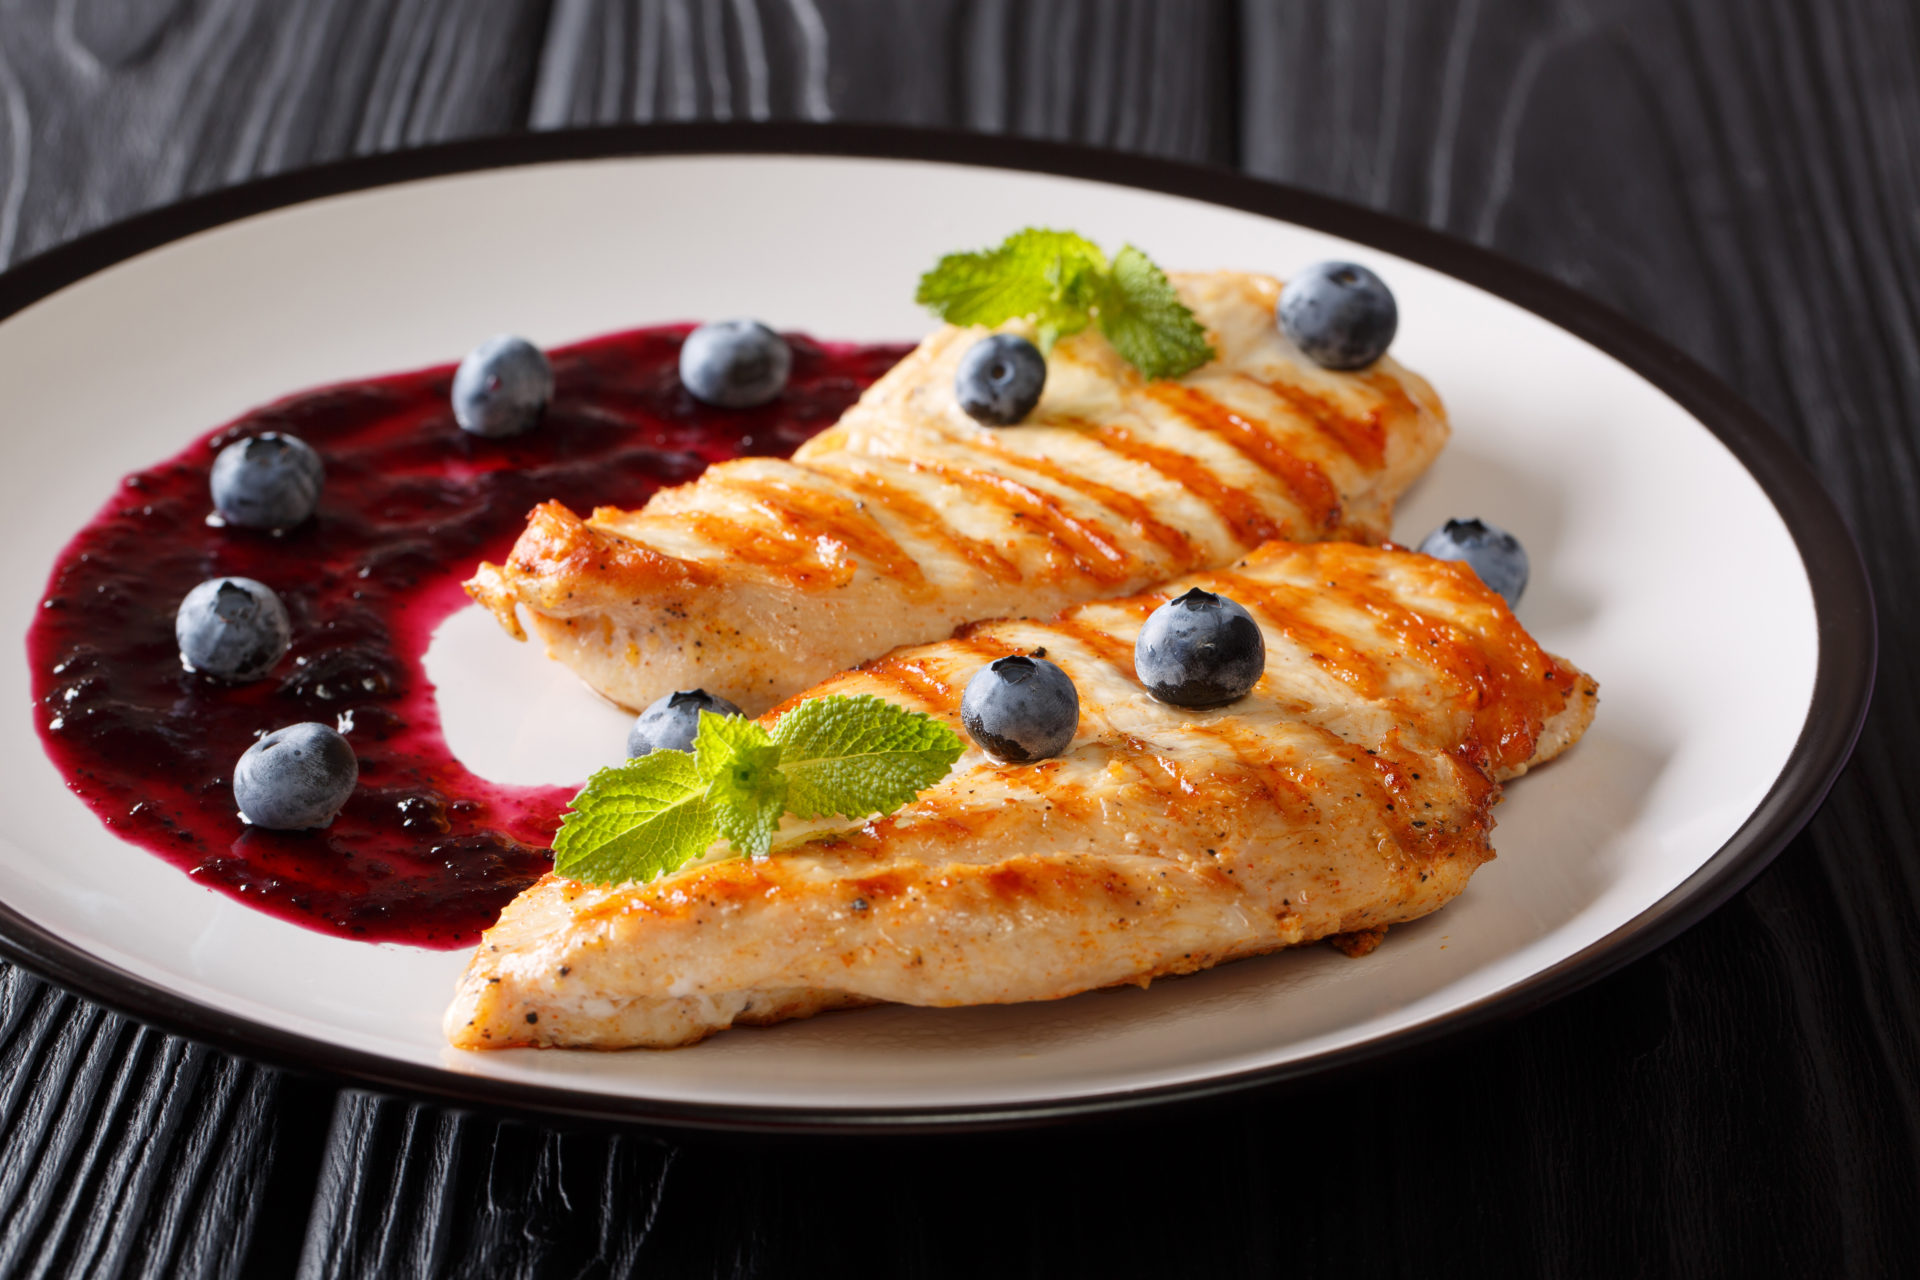 Freshly,Cooked,Grilled,Chicken,Breast,With,Berry,Sauce,And,Mint